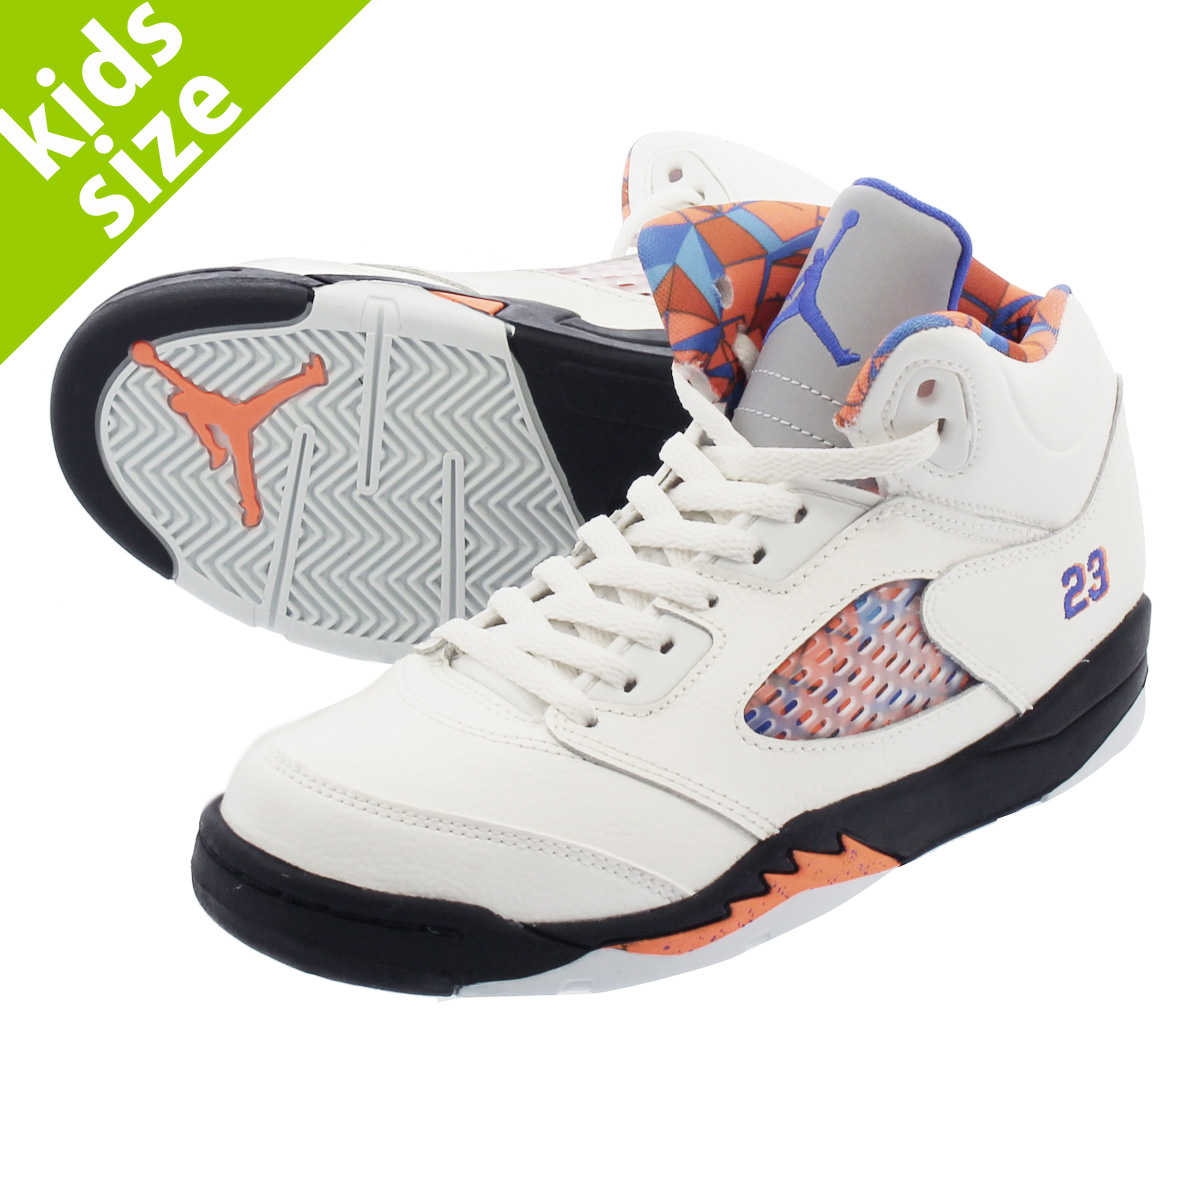 new styles a7d75 cb8c8 NIKE AIR JORDAN 5 RETRO BP Nike Air Jordan 5 nostalgic BP SAIL RACER BLUE CONE BLACK  440,889-148